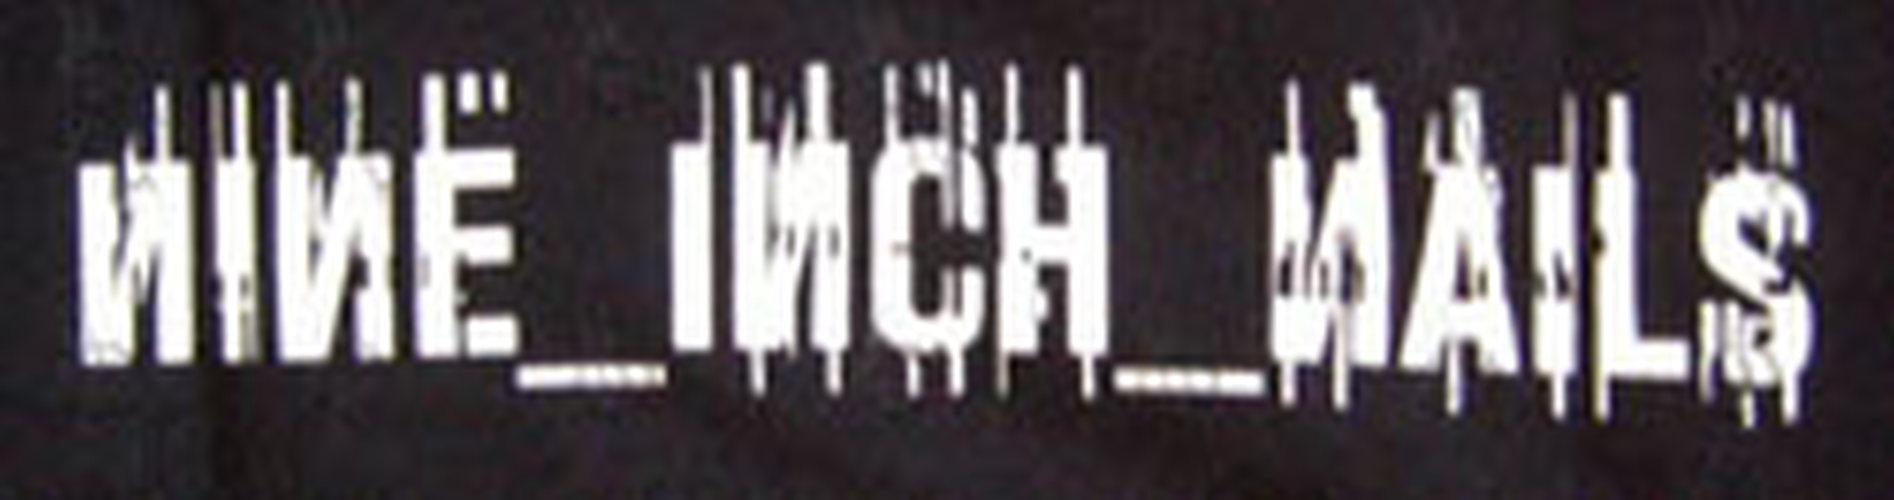 NINE INCH NAILS - Black \'Live: With Teeth 2005\' Australian Tour T ...